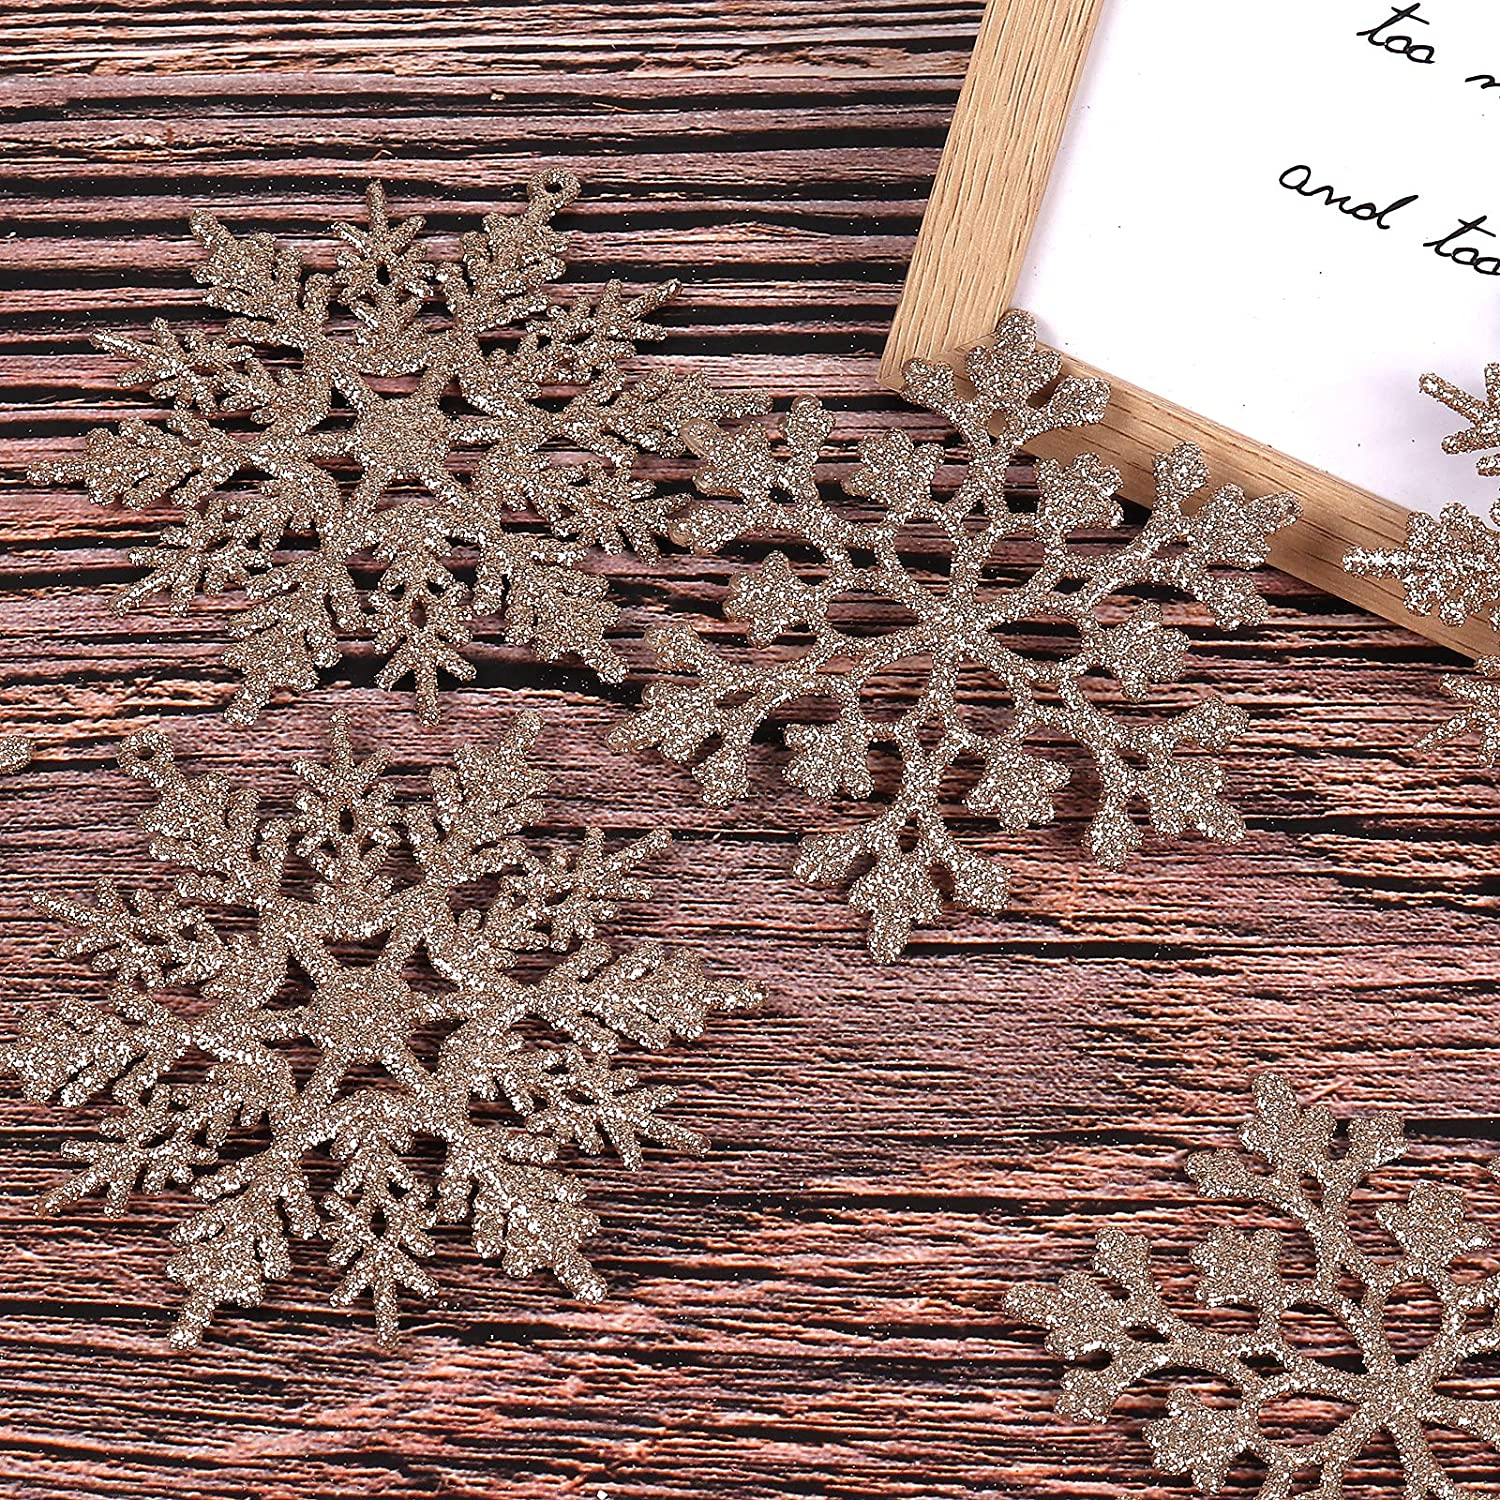 RECUTMS 40Pieces Blue Glitter Snowflake Winter Snowflake Ornaments Christmas Hanging Decorations for Christmas Tree Wedding Embellishing Party Decorations,4 Inches,2 Pattern Blue